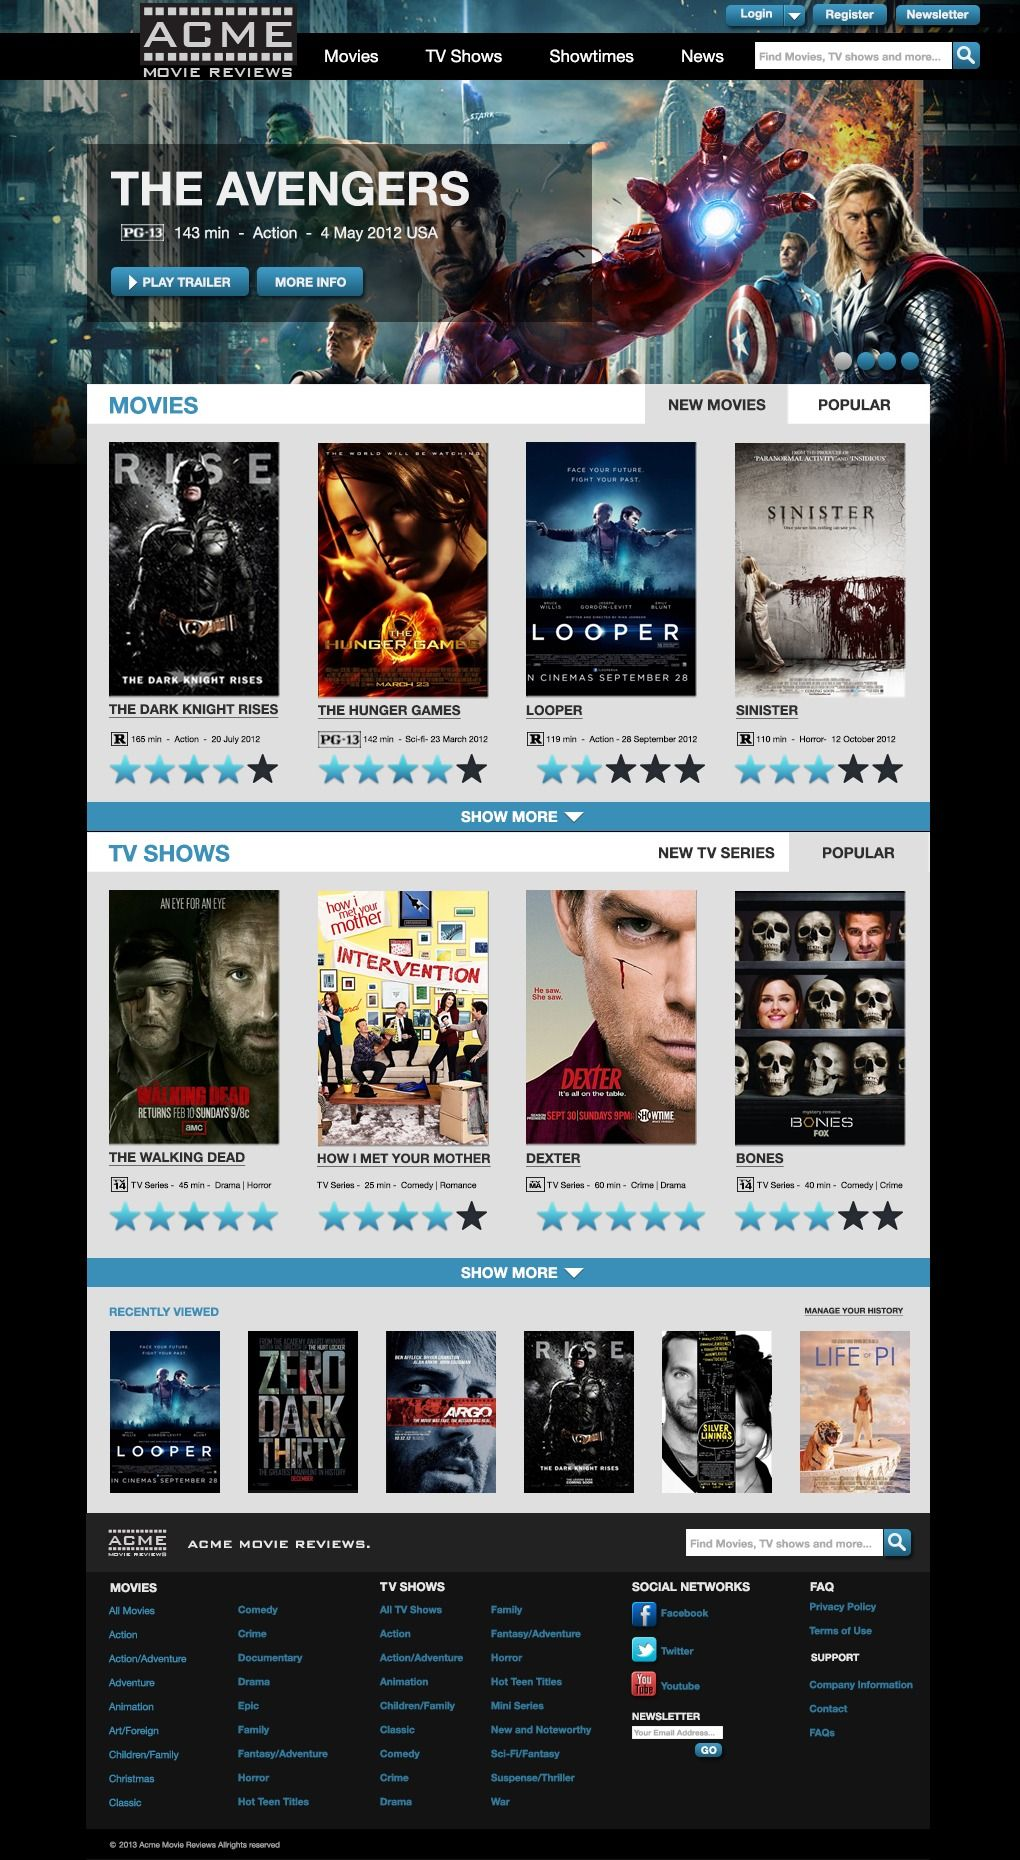 Movie Review Website Free PSD Template | Free PSD Templates ...